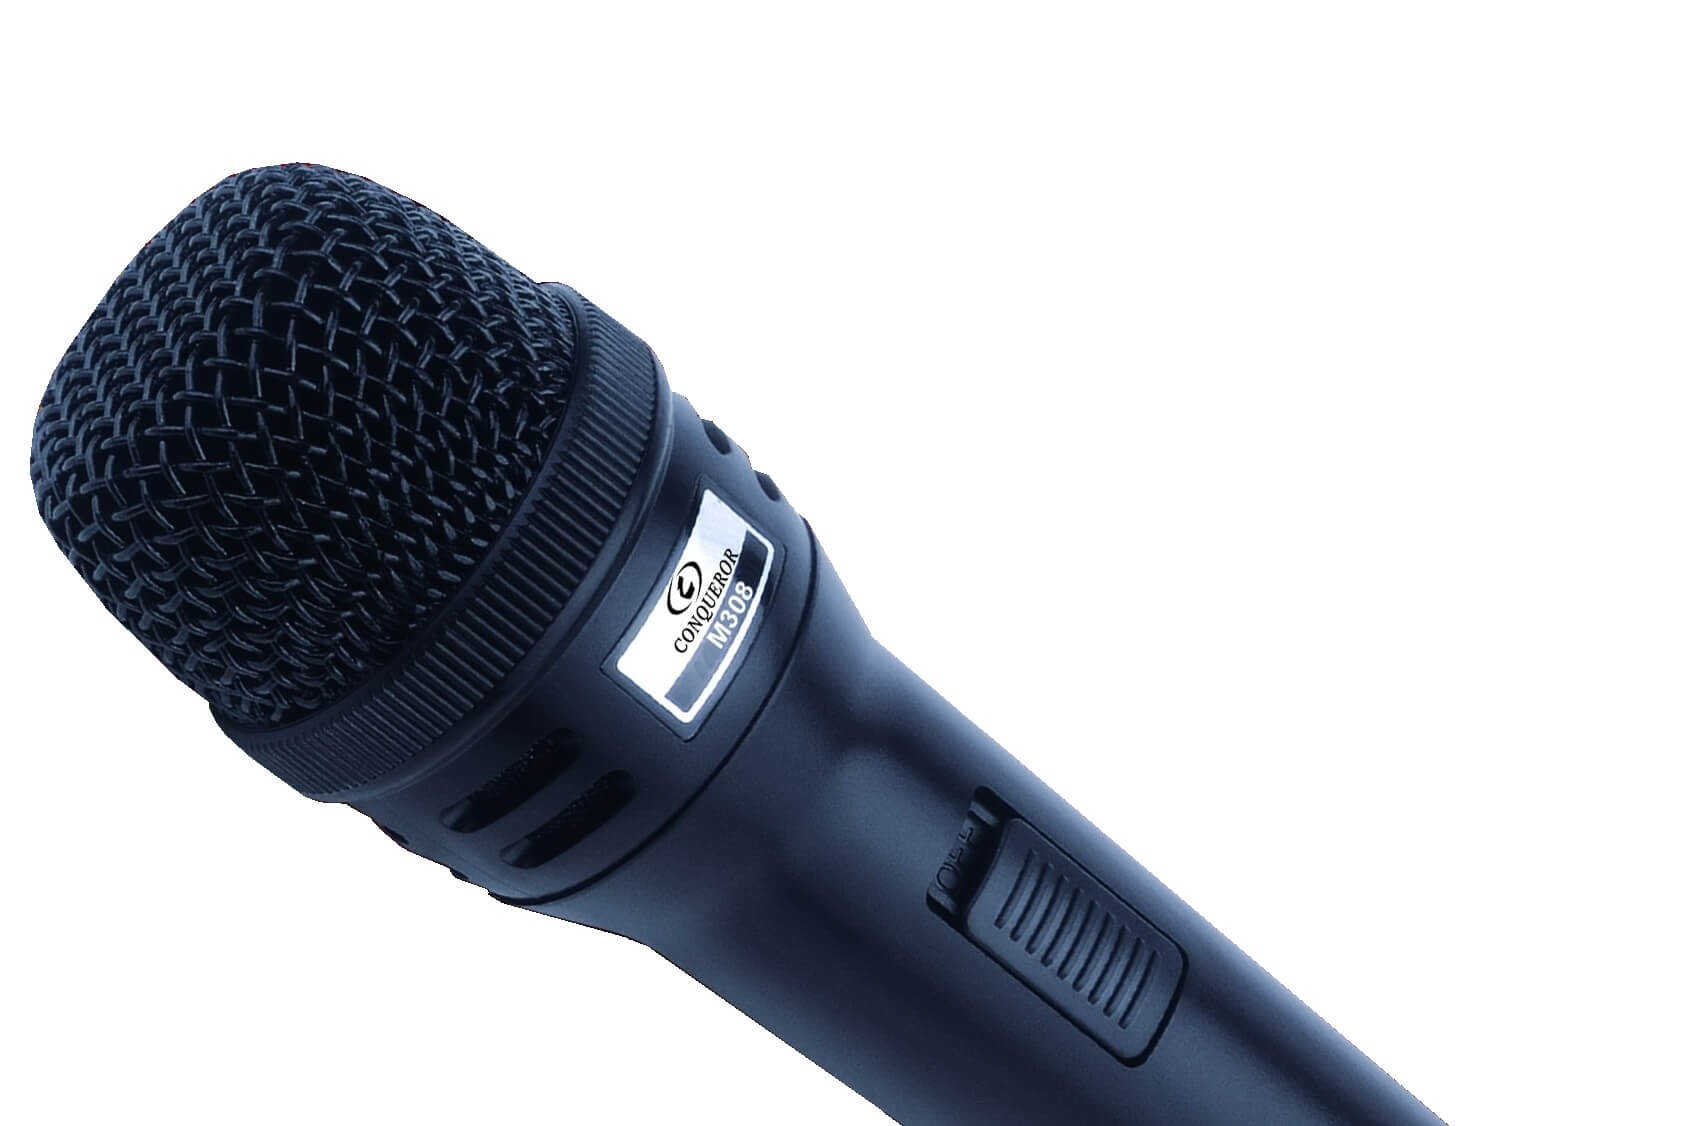 Conqueror Dynamic Microphone Handheld Wired - M308 - TV, Audio ...